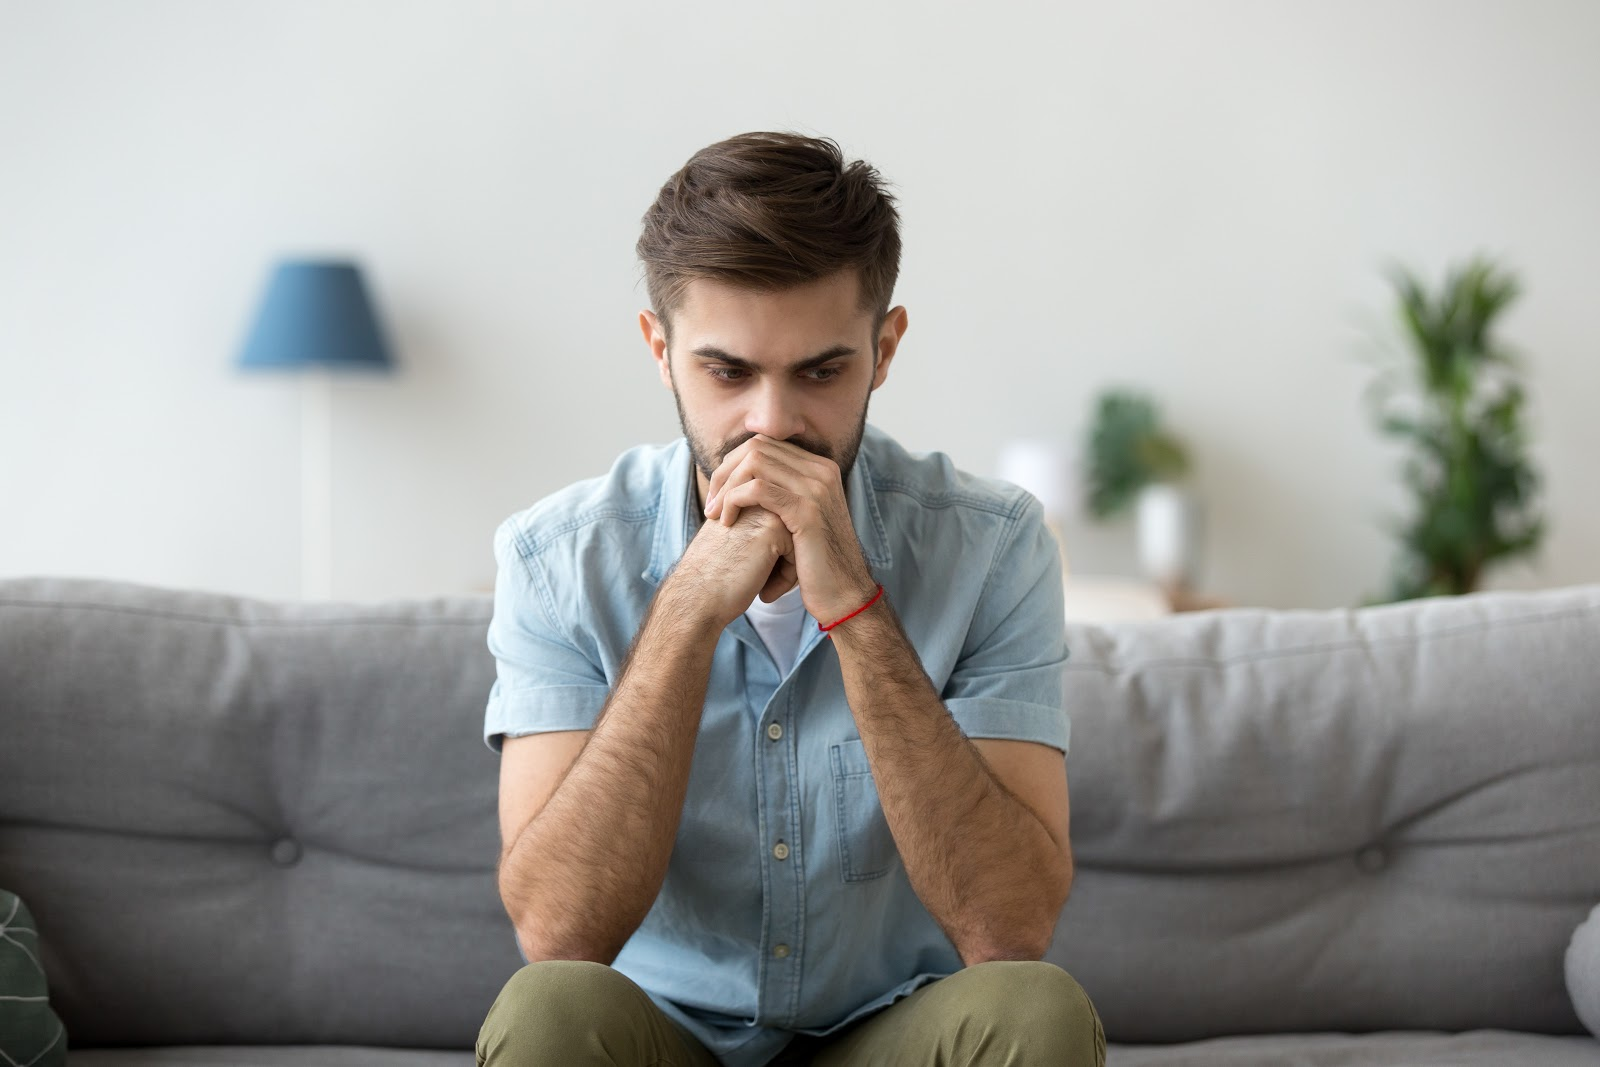 Man looking indecisive, stressed